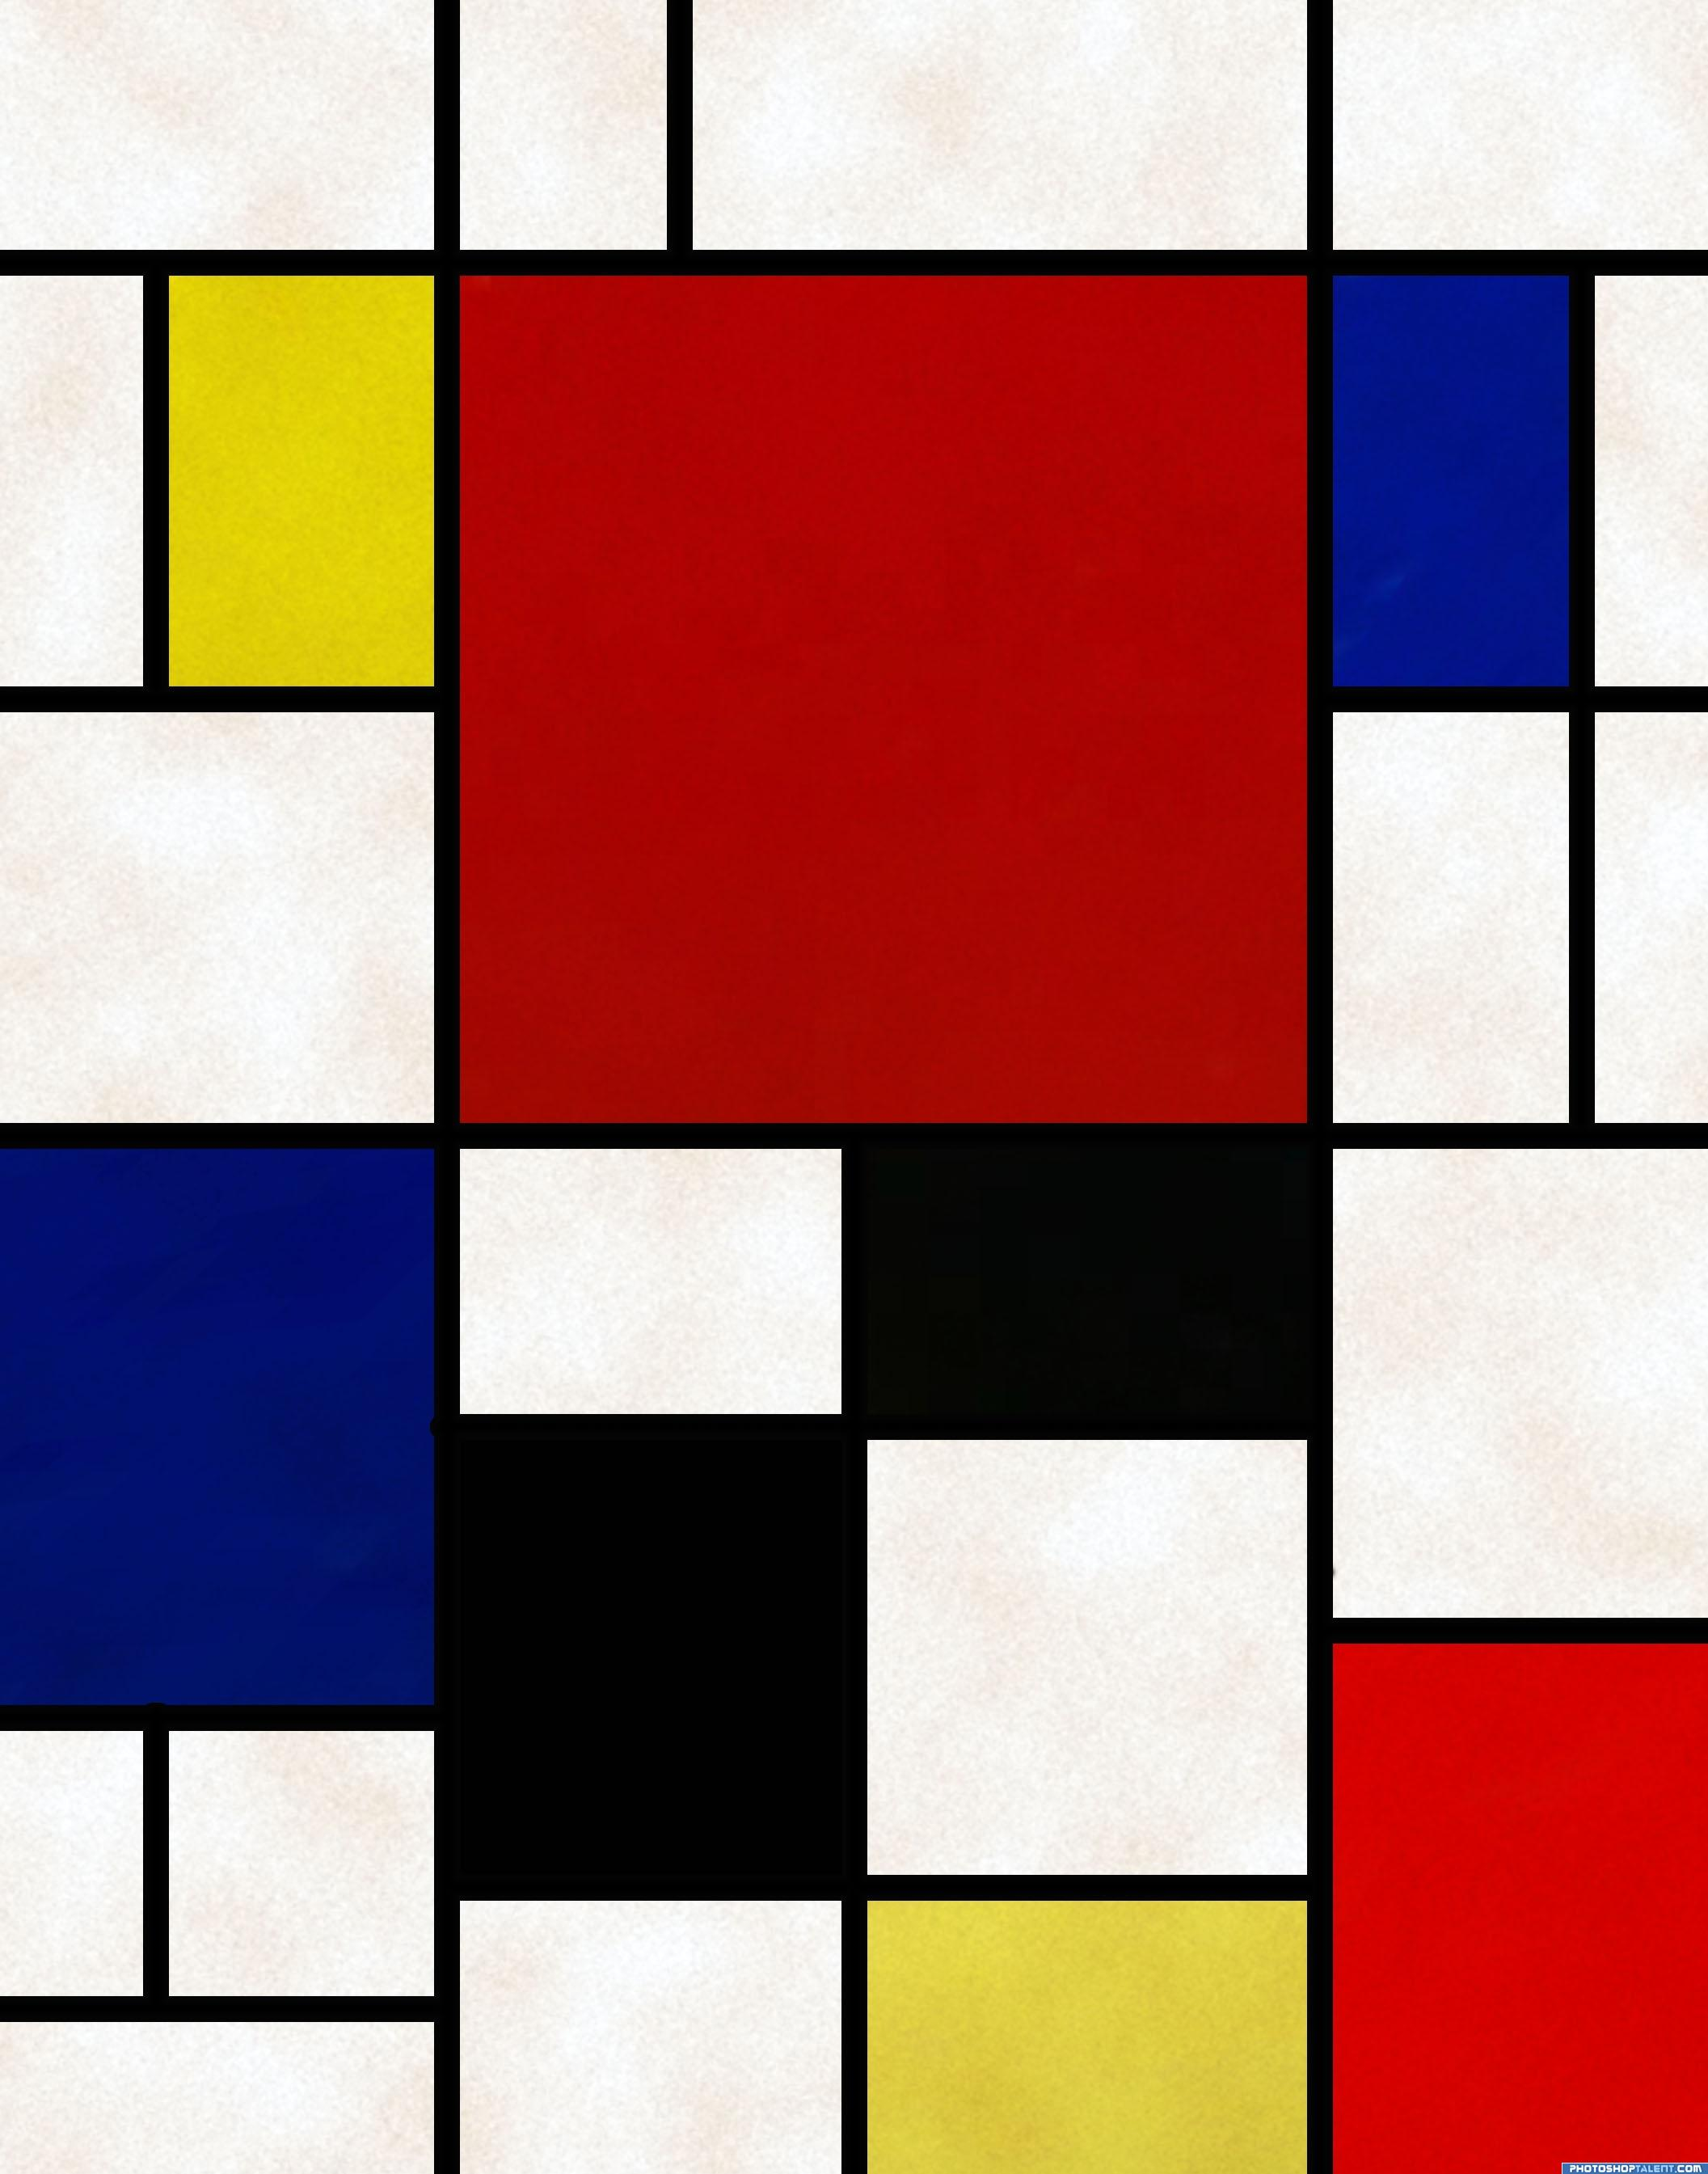 Mondrian Contest Pictures made with Photoshop - Image Page 1 ...